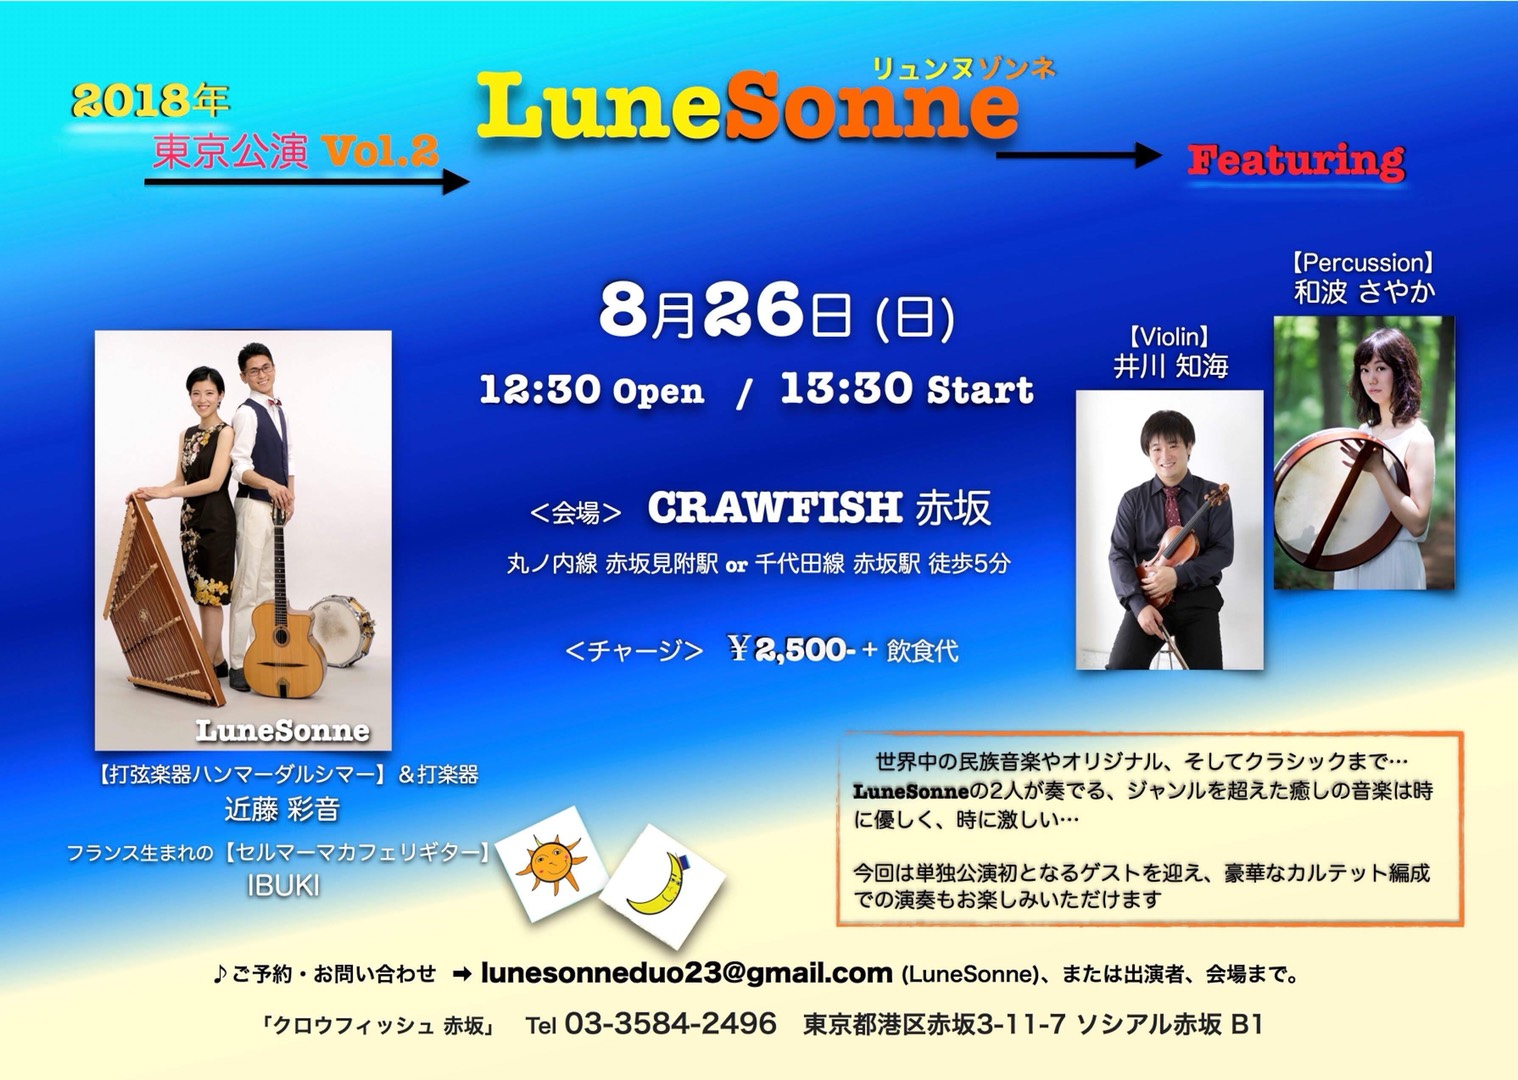 LuneSonne 東京公演 第2弾  featuring 井川知海、和波さやか